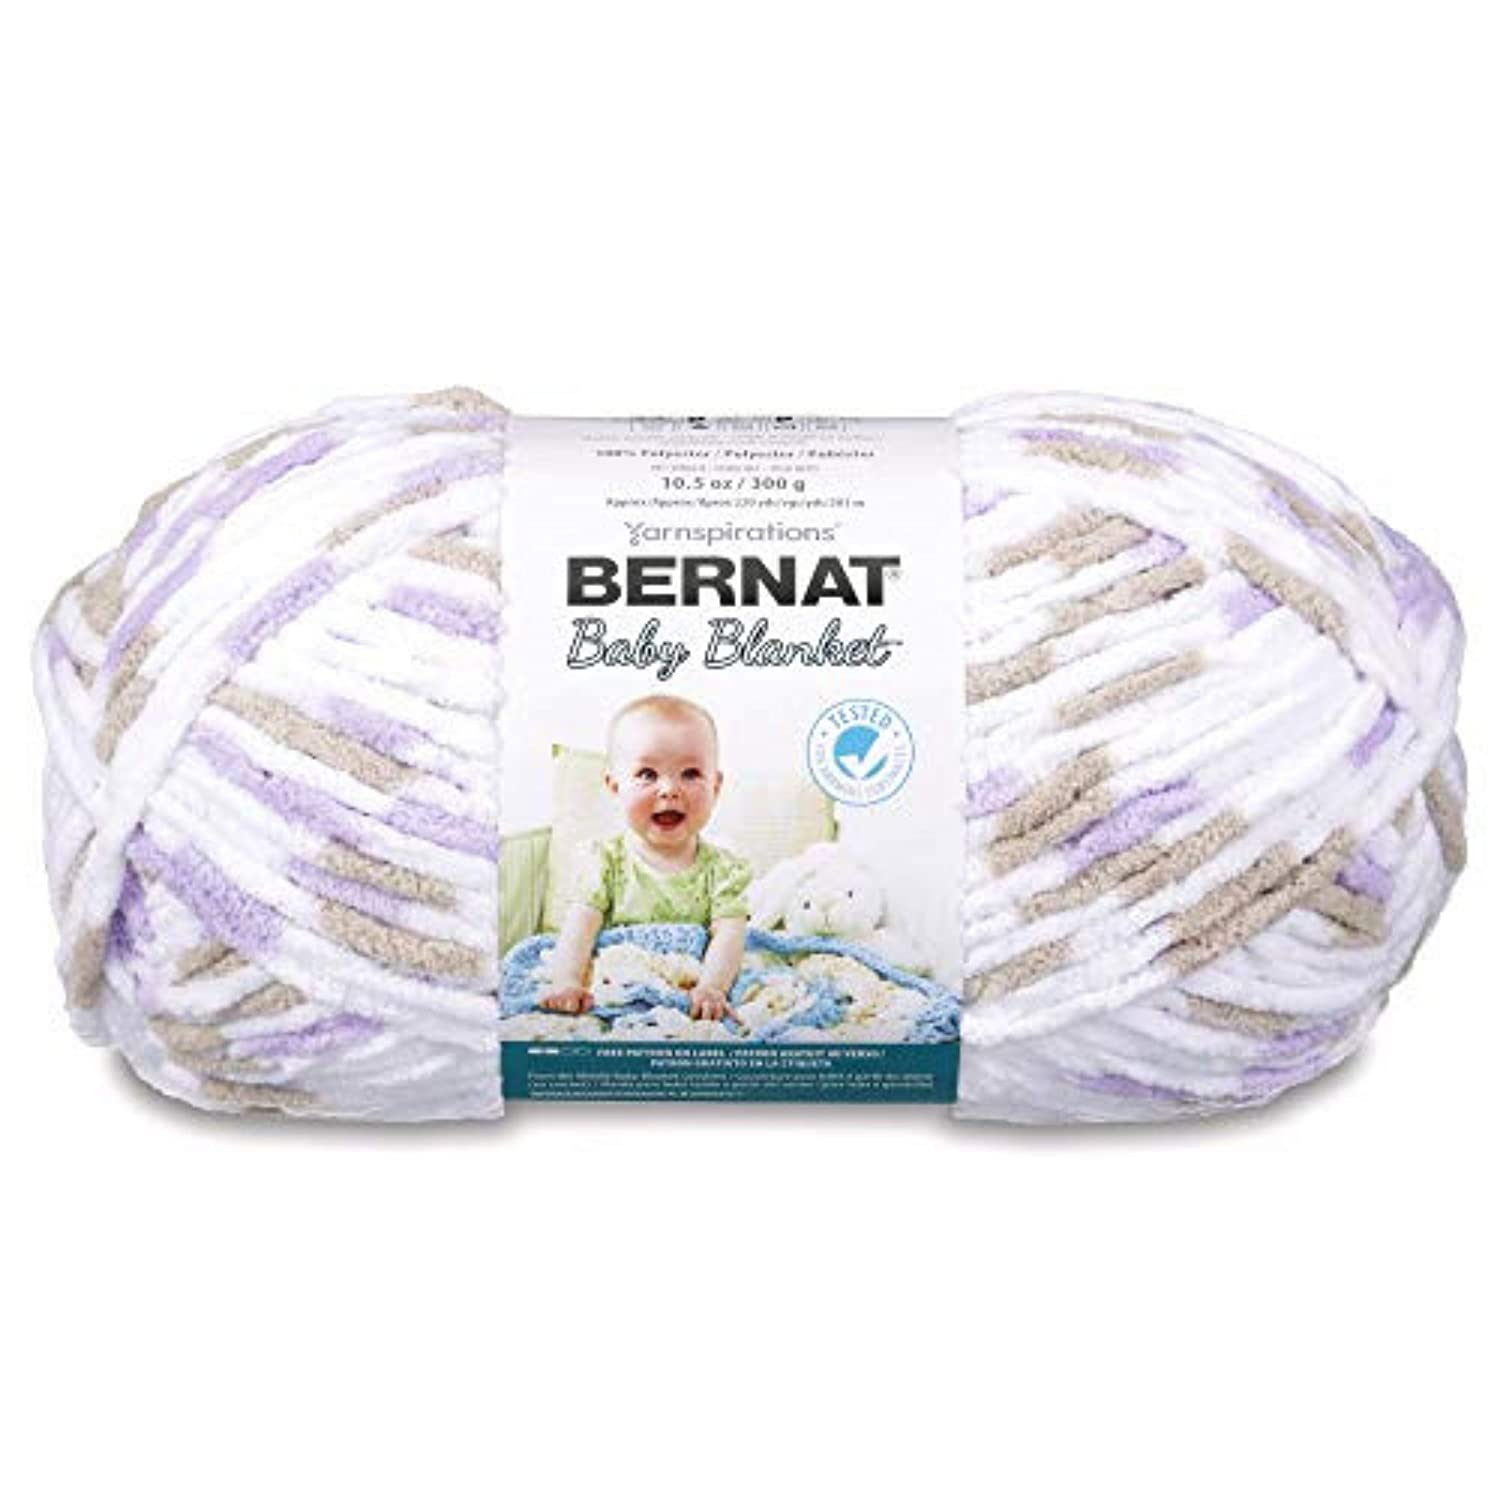 10.5 oz Single Ball Machine Wash /& Dry Bernat 16110404325 Baby Blanket Yarn - Beach Babe Super Bulky Gauge 6